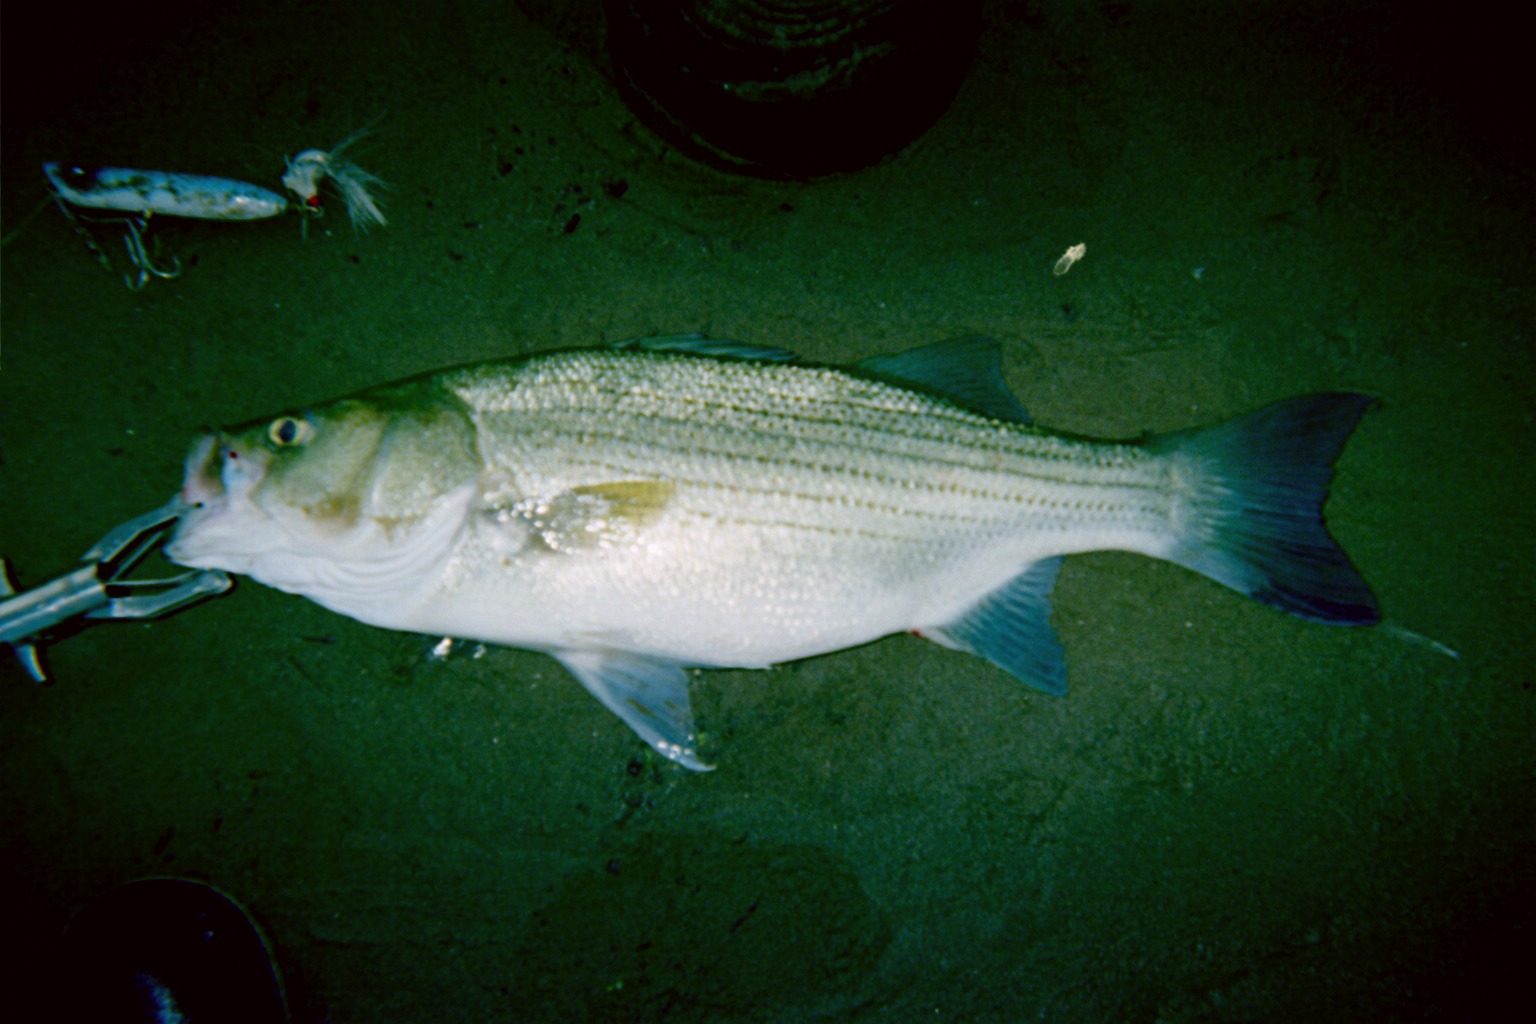 John Stacey Louisville Kentucky   Species: Hybrid Striped Bass Date Caught: 08/19/2011 Kept /